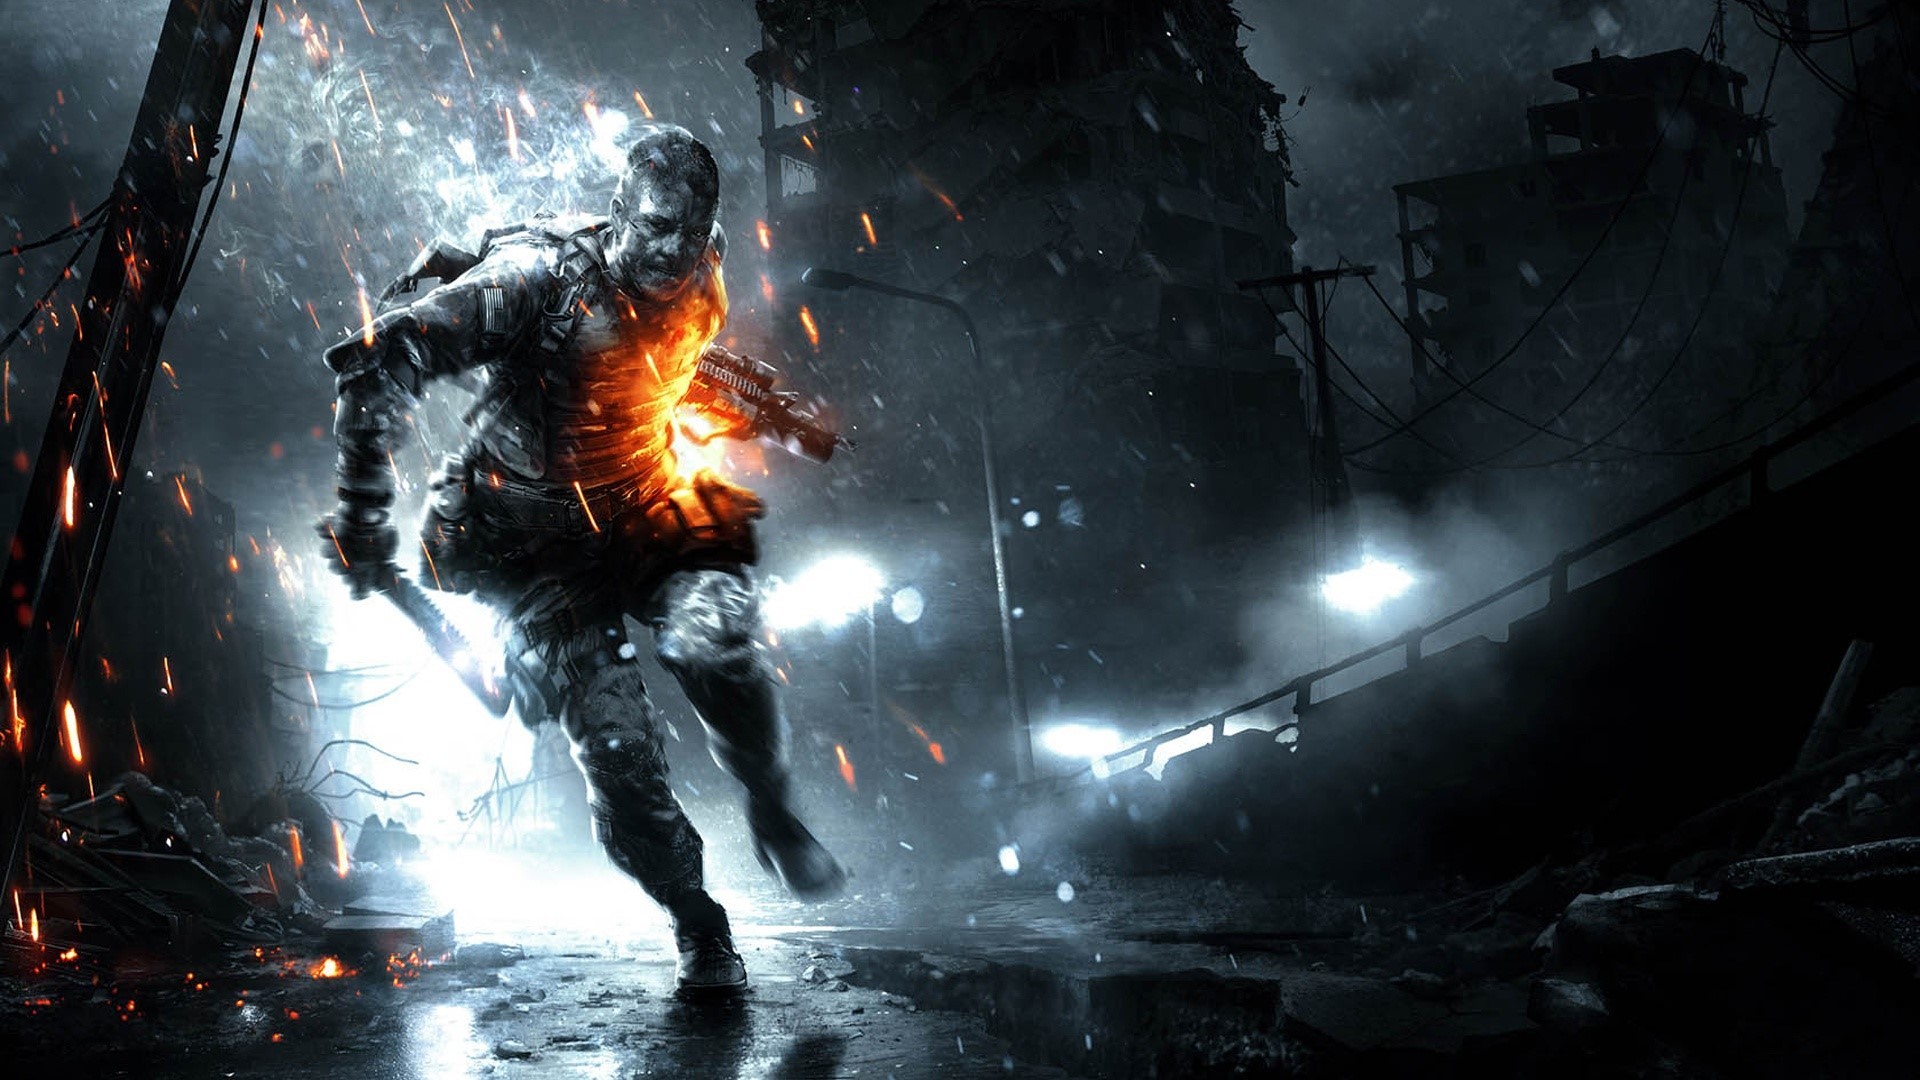 Wallpaper Battlefield 3 Premium Aftermath